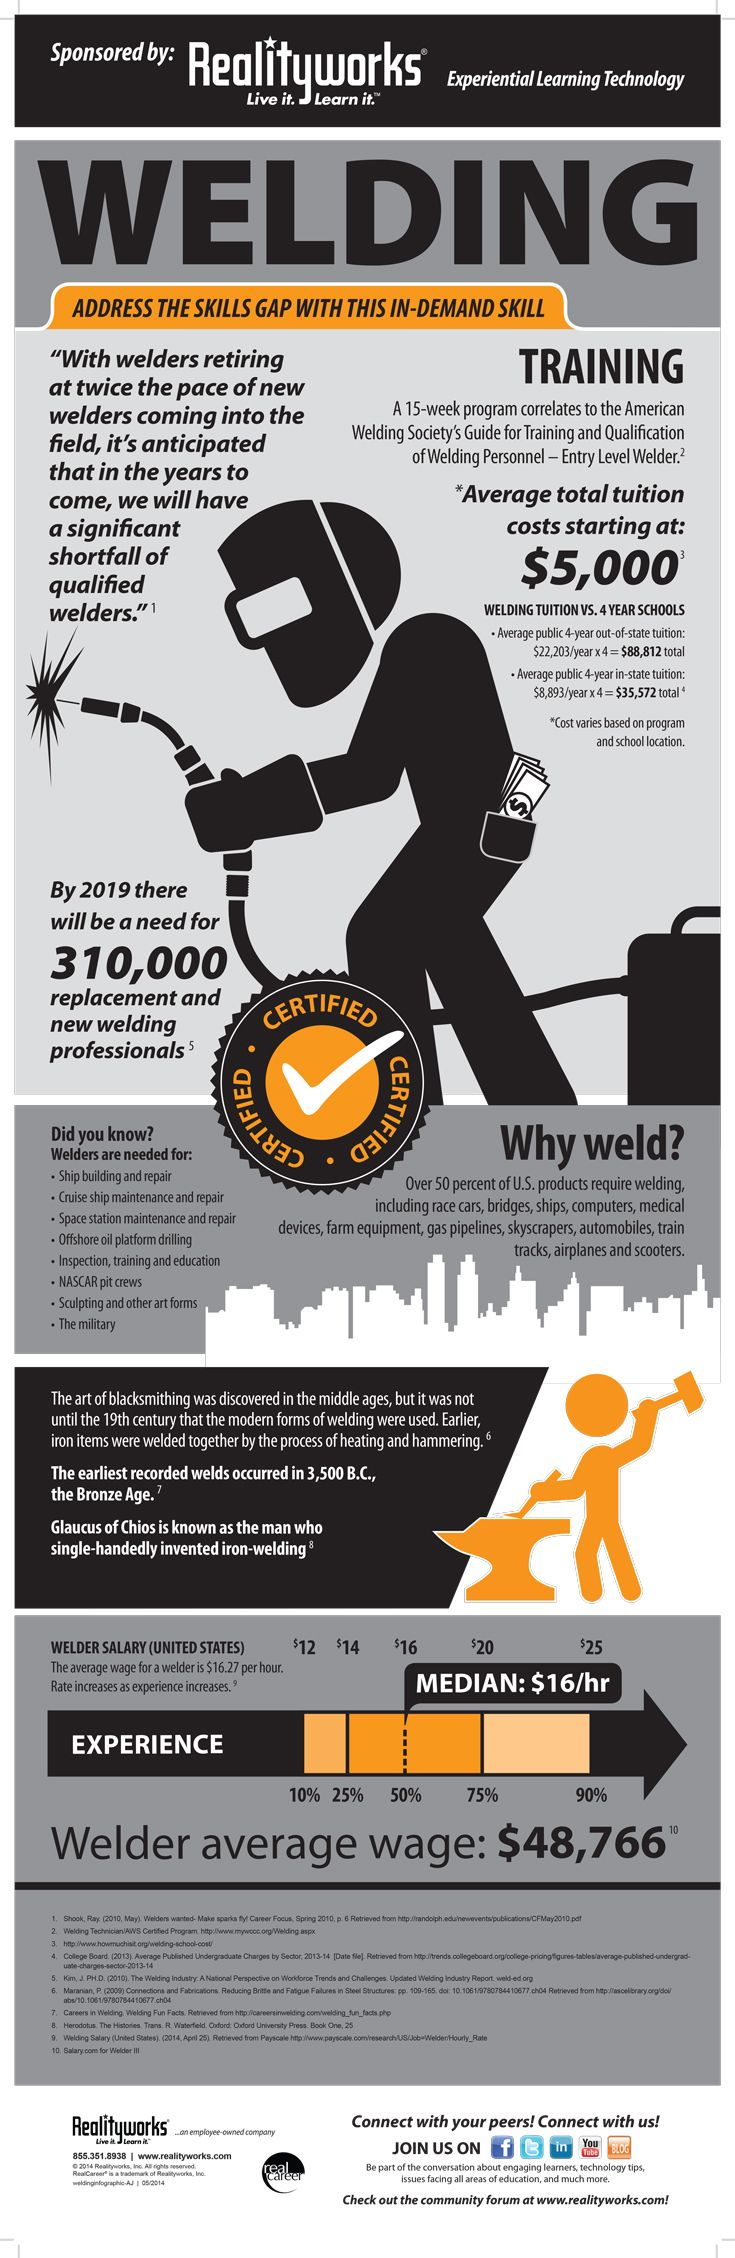 With welders retiring at twice the pace of new welders coming into the field, it's anticipated that in the years to come, we will have a significant shortfall of qualified  welders! Learn why welding is such an in-demand skill with this infographic! #RealCareer